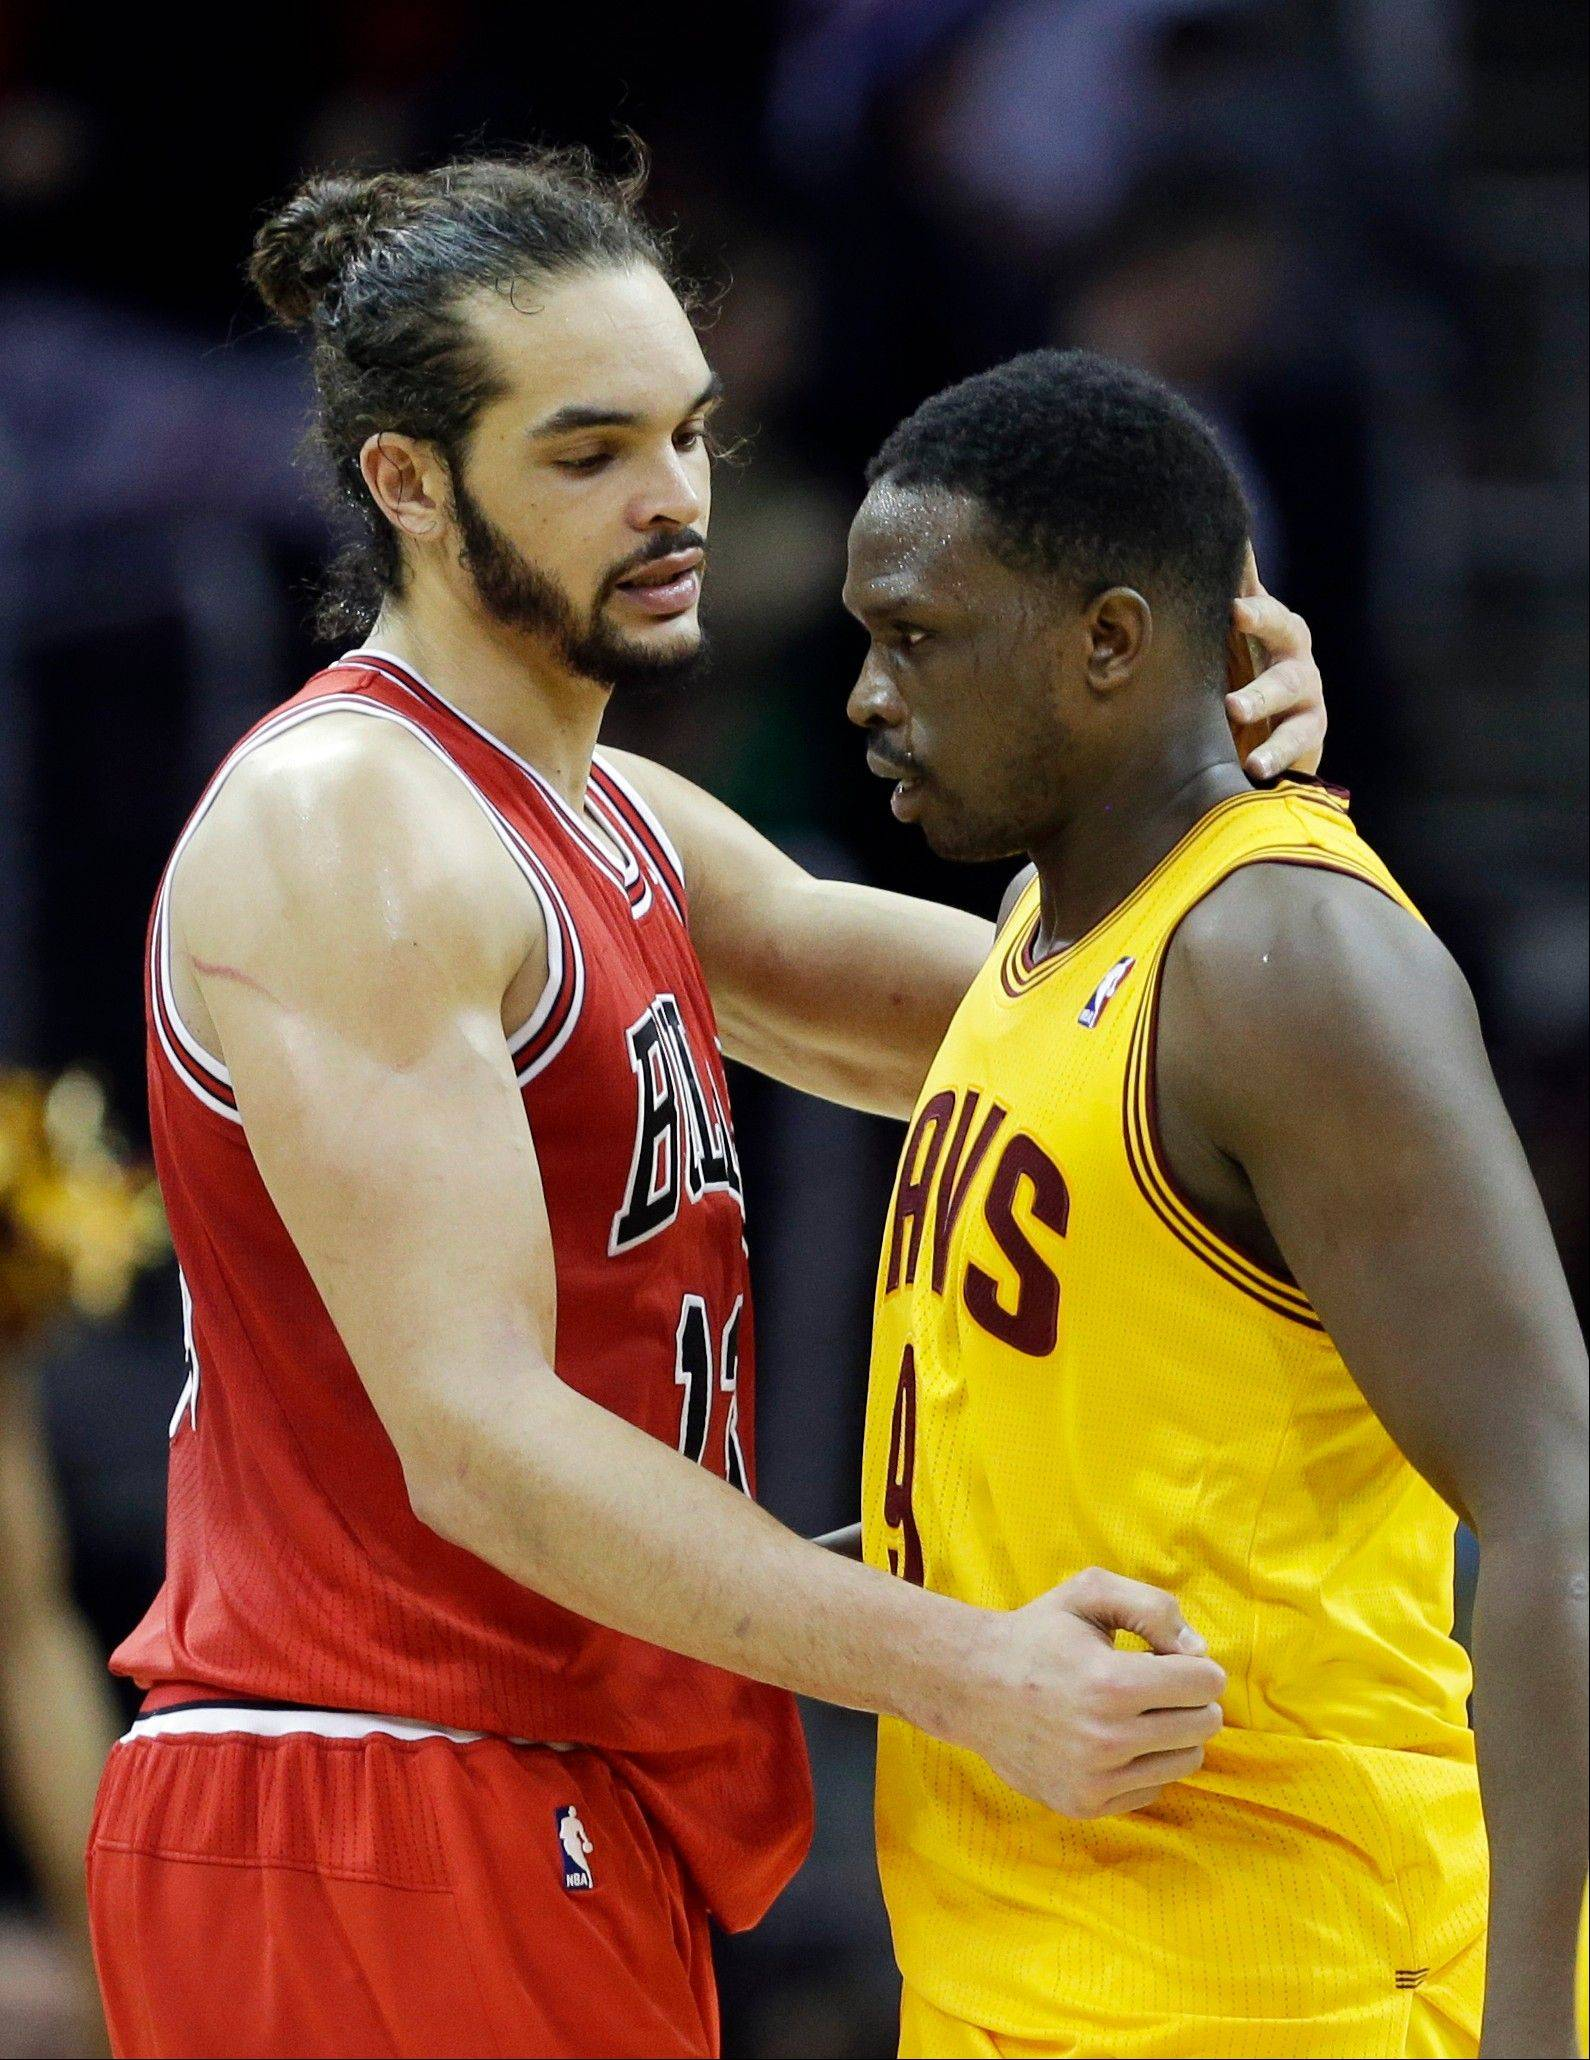 Tne Bulls� Joakim Noah embraces former teammate Luol Deng after the Bulls� victory over Deng and his new team, the Cleveland Cavaliers.